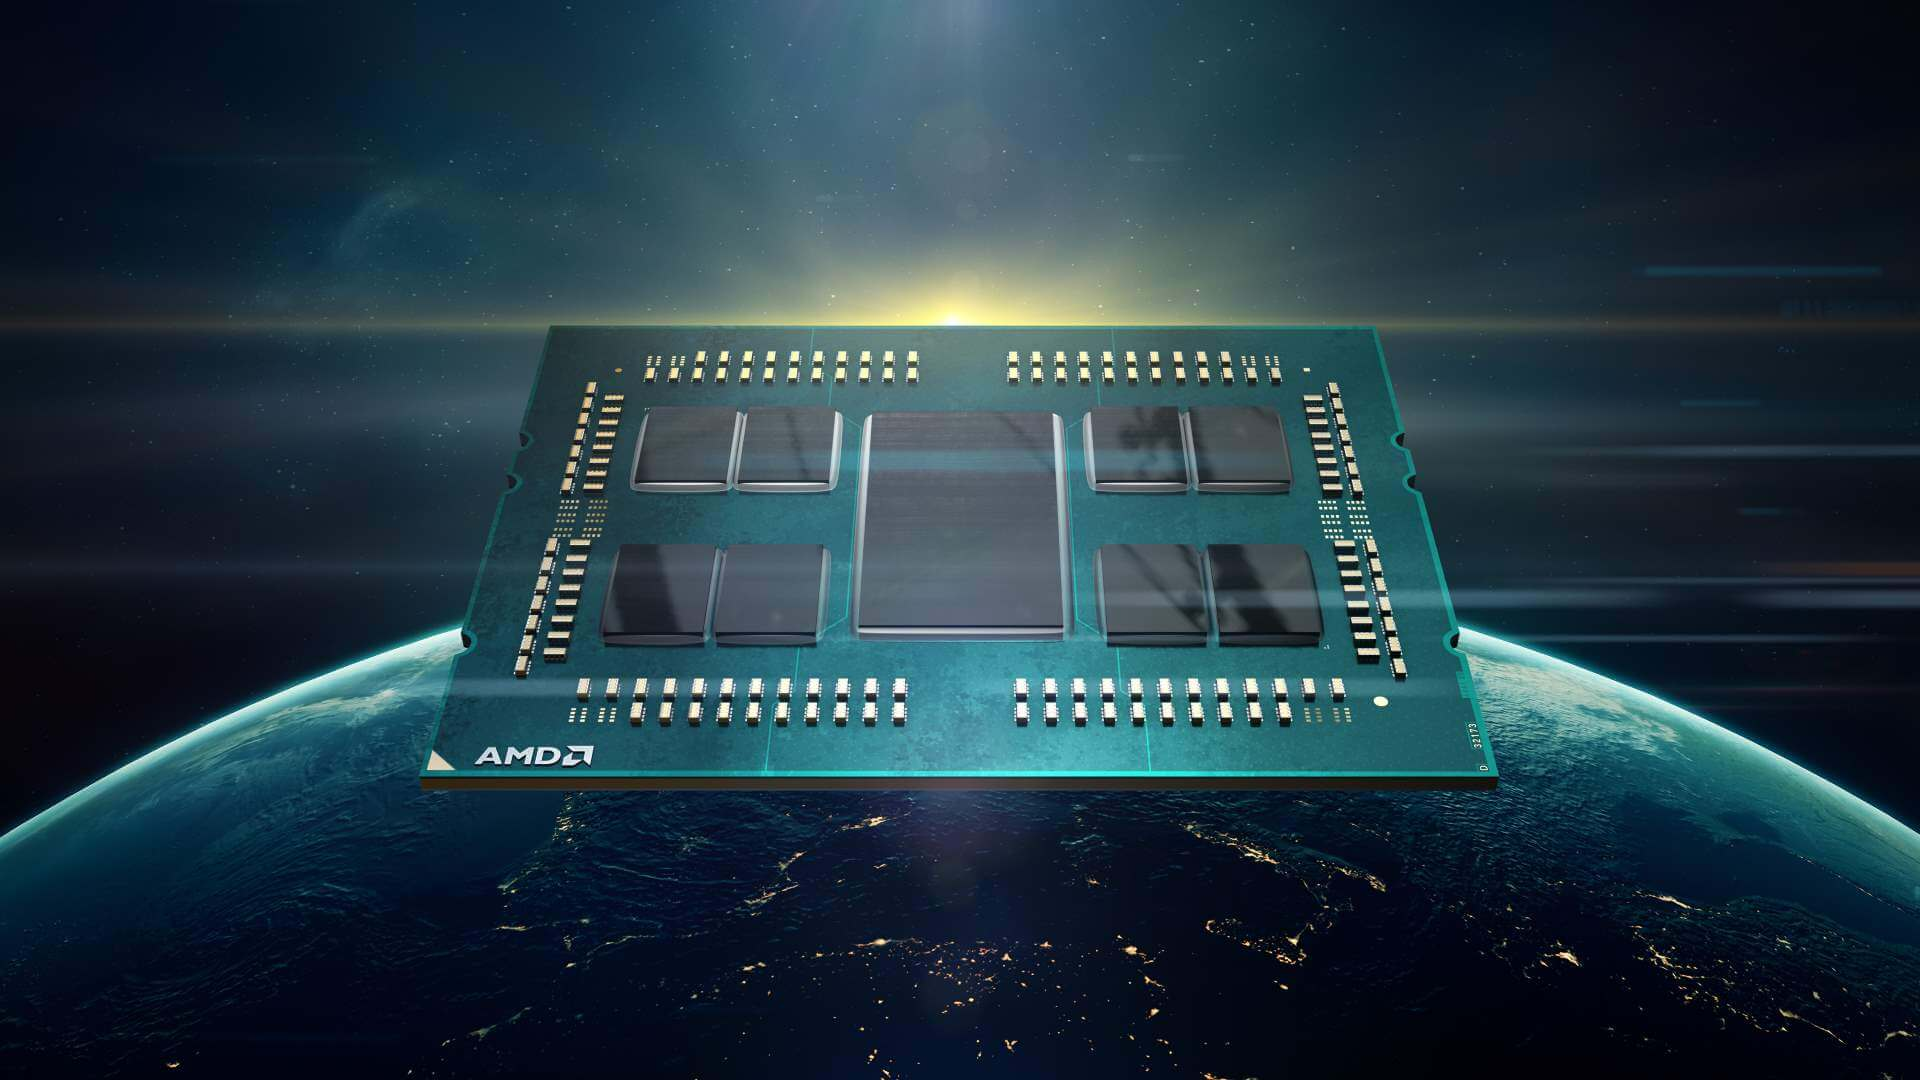 Opinion: Server chips are now leading semiconductor innovations